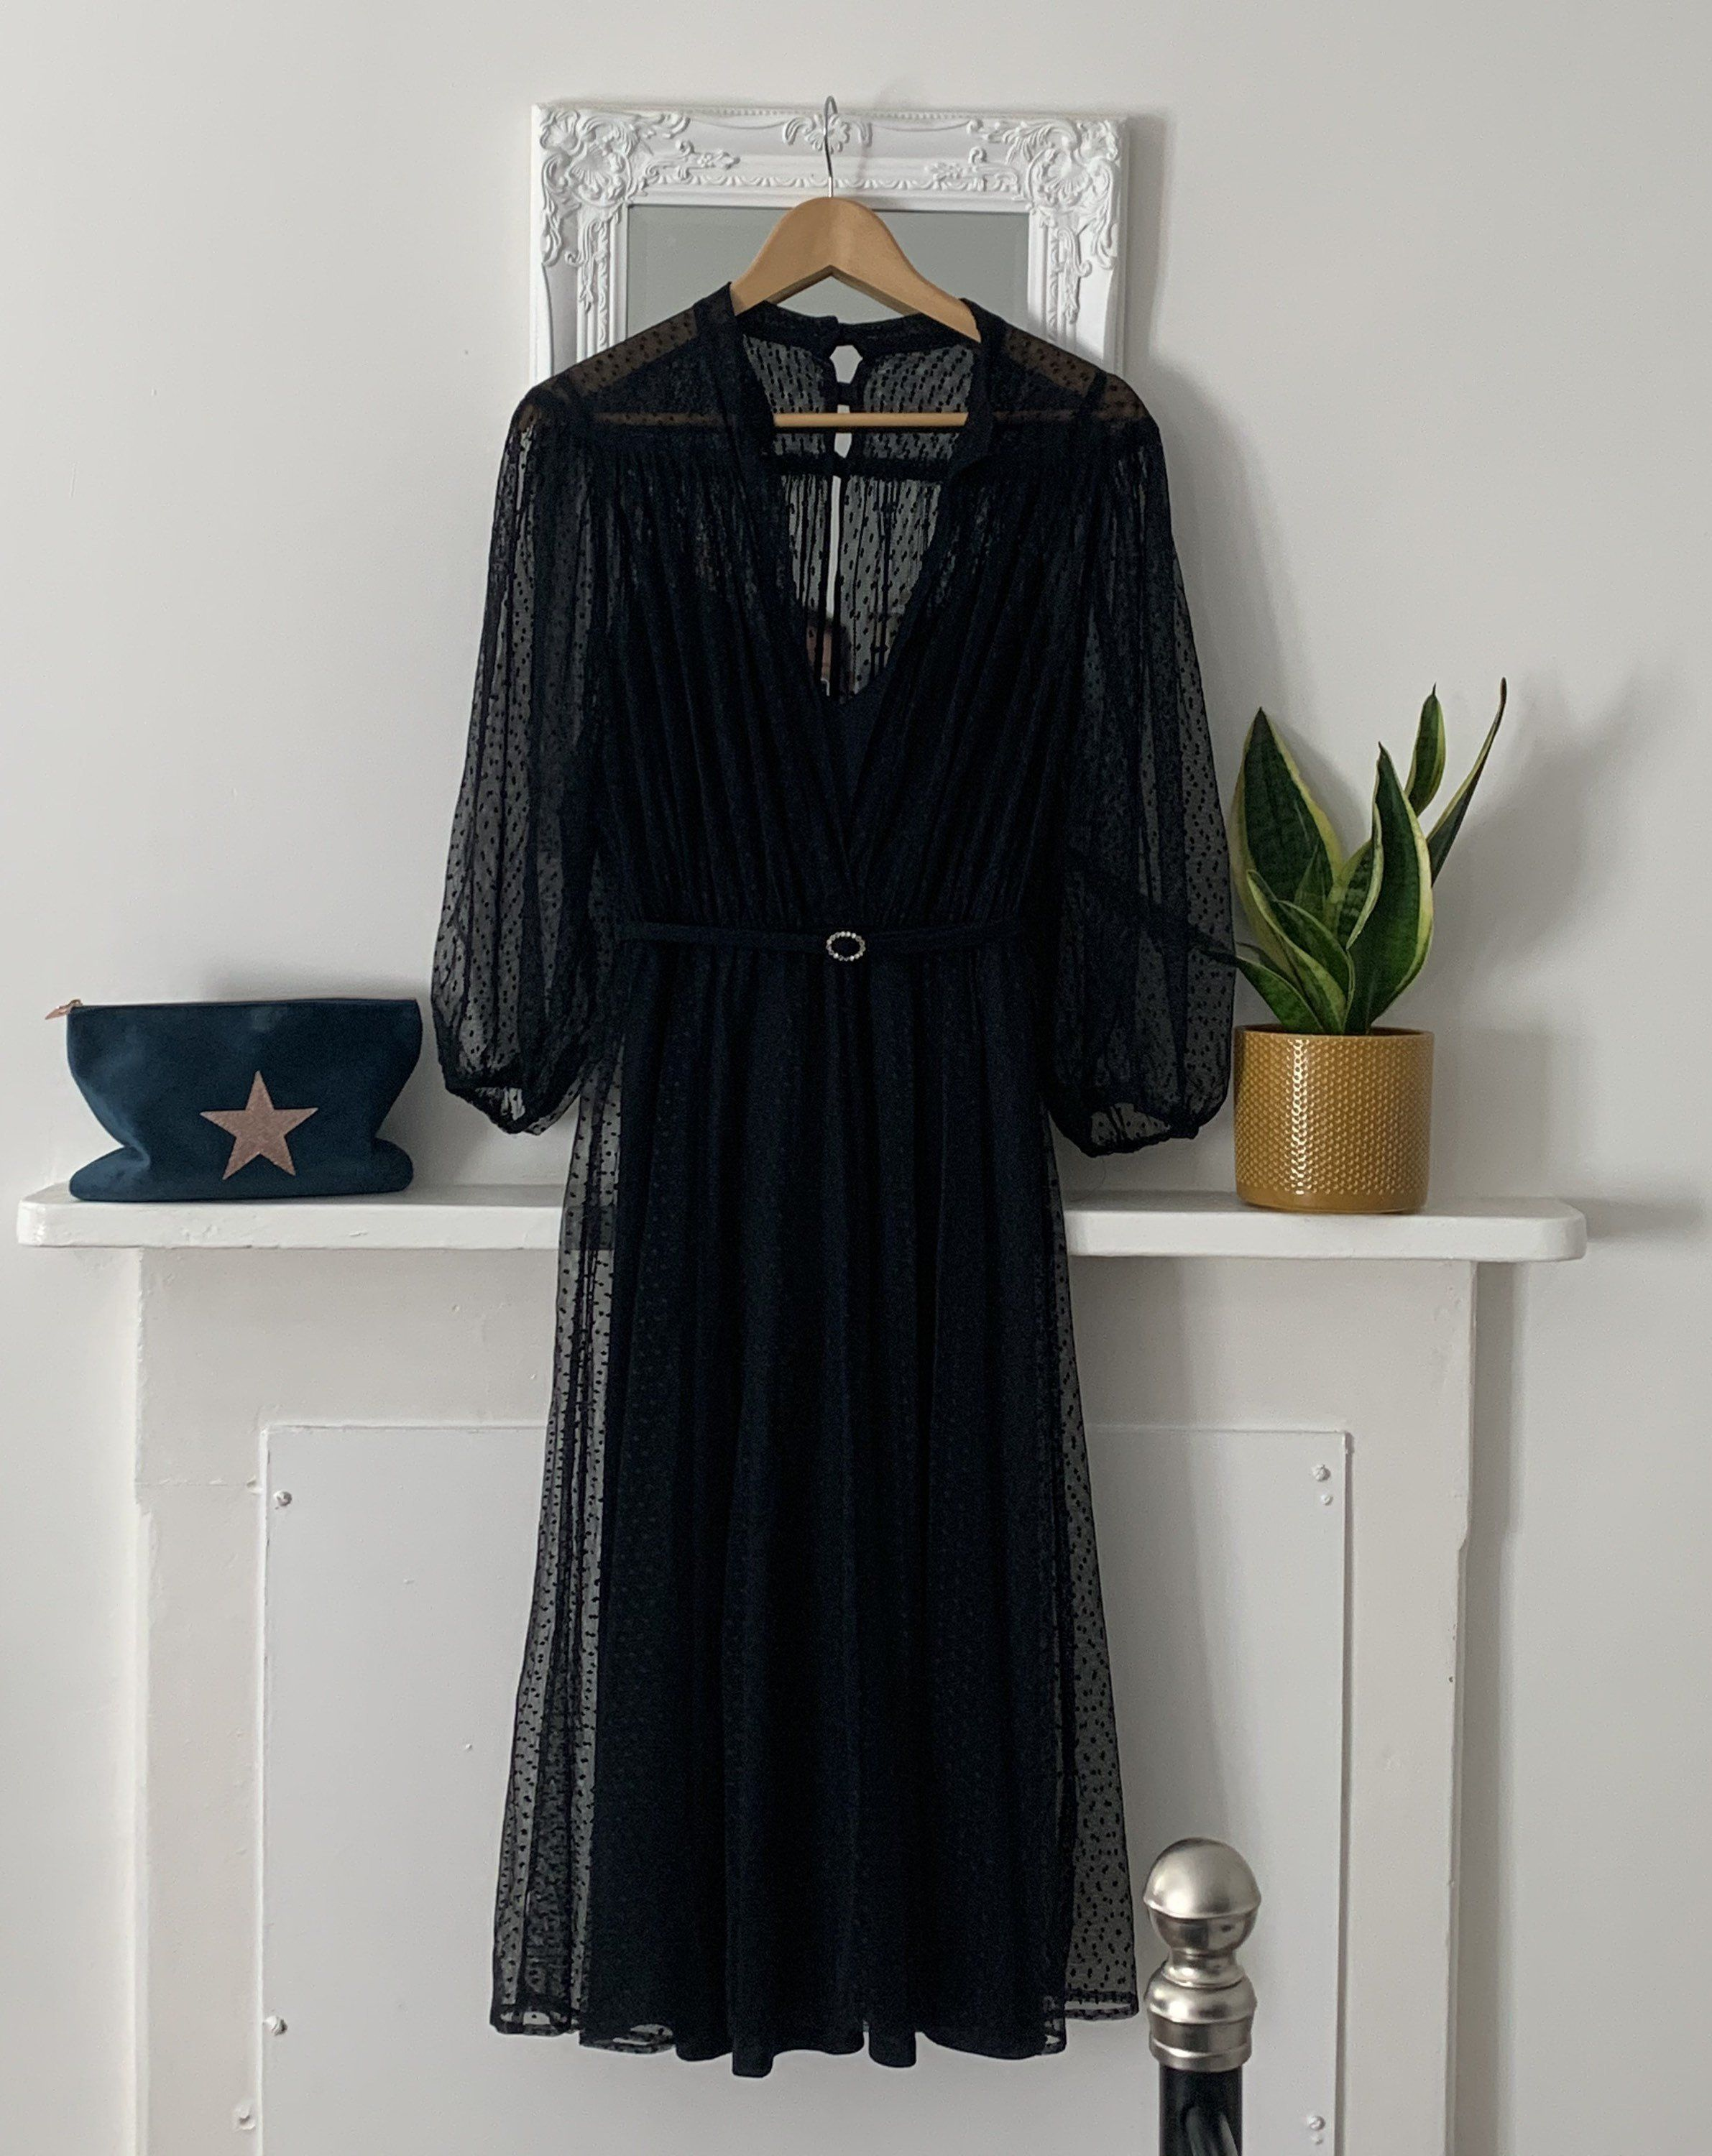 70s Black Sheer Dress Strappy Underdress Balloon Sleeve With Sheer Over Layer Excellent Condition Pol Balloon Sleeve Dress Black Sheer Dress 70s Maxi Dress [ 3000 x 2382 Pixel ]